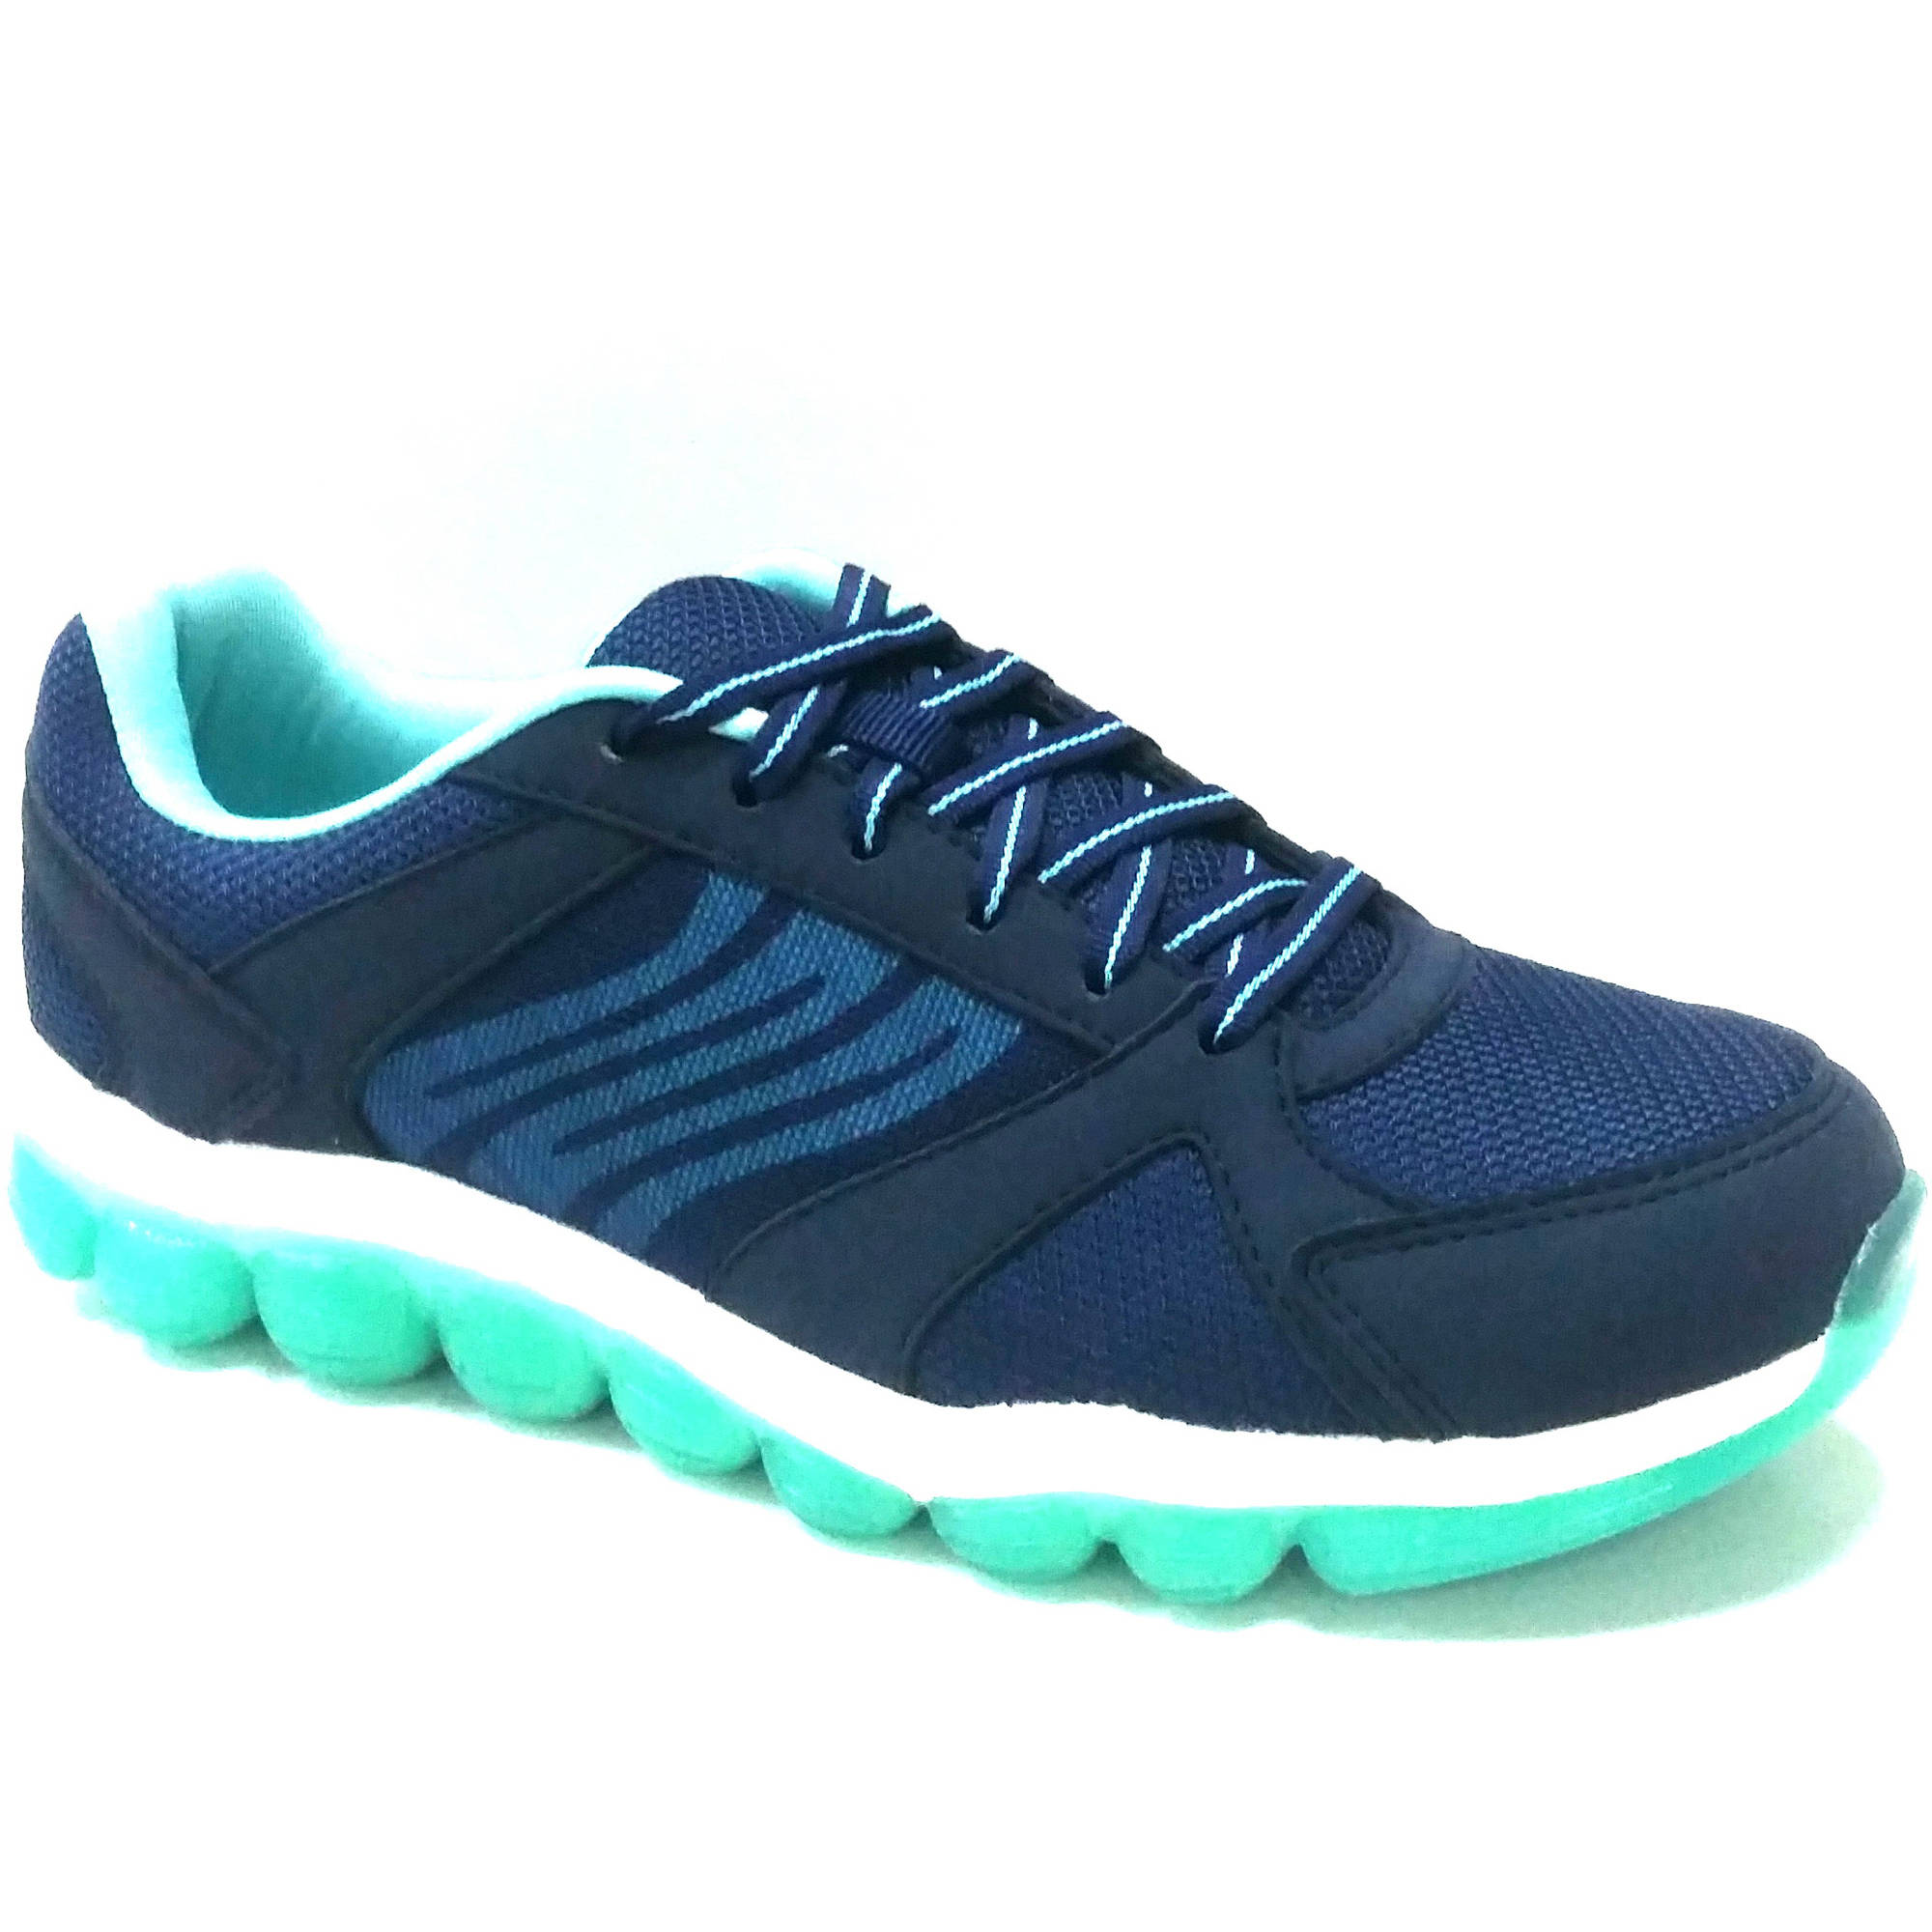 Danskin Now Women's Lightweight Athletic Moonwalker Shoe